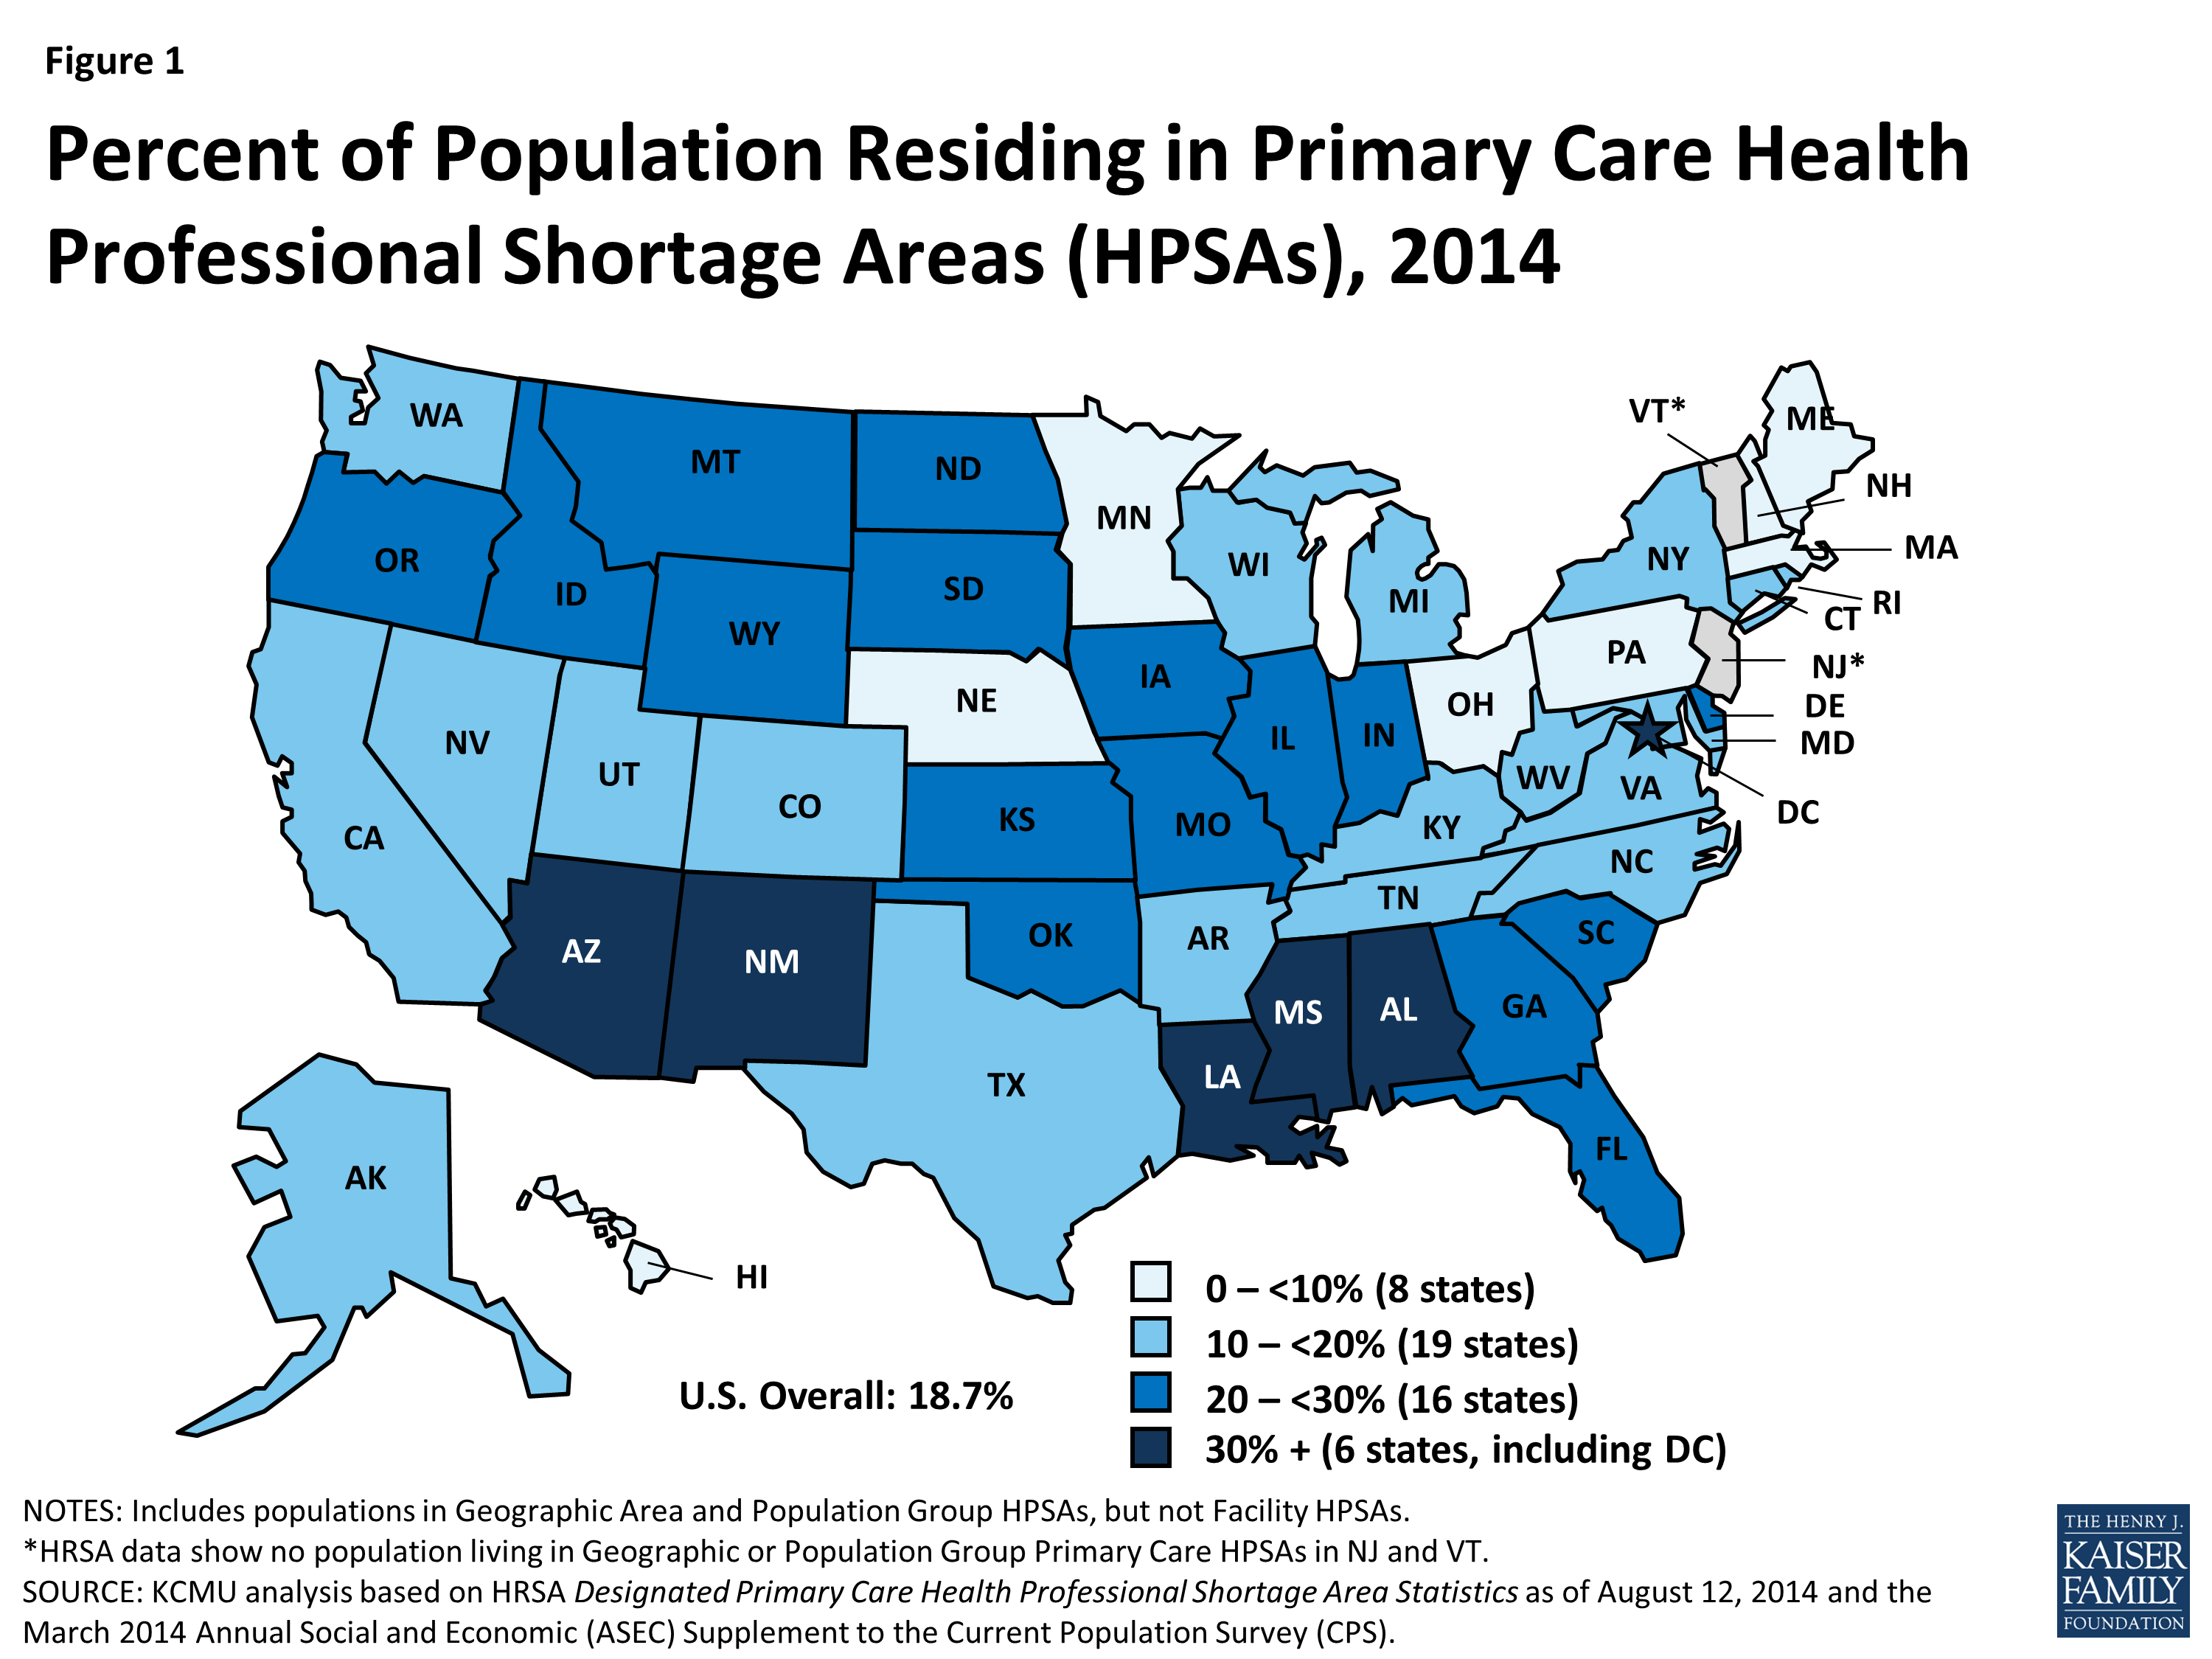 Percent of Population Residing in Primary Care Health Professional Shortage Areas